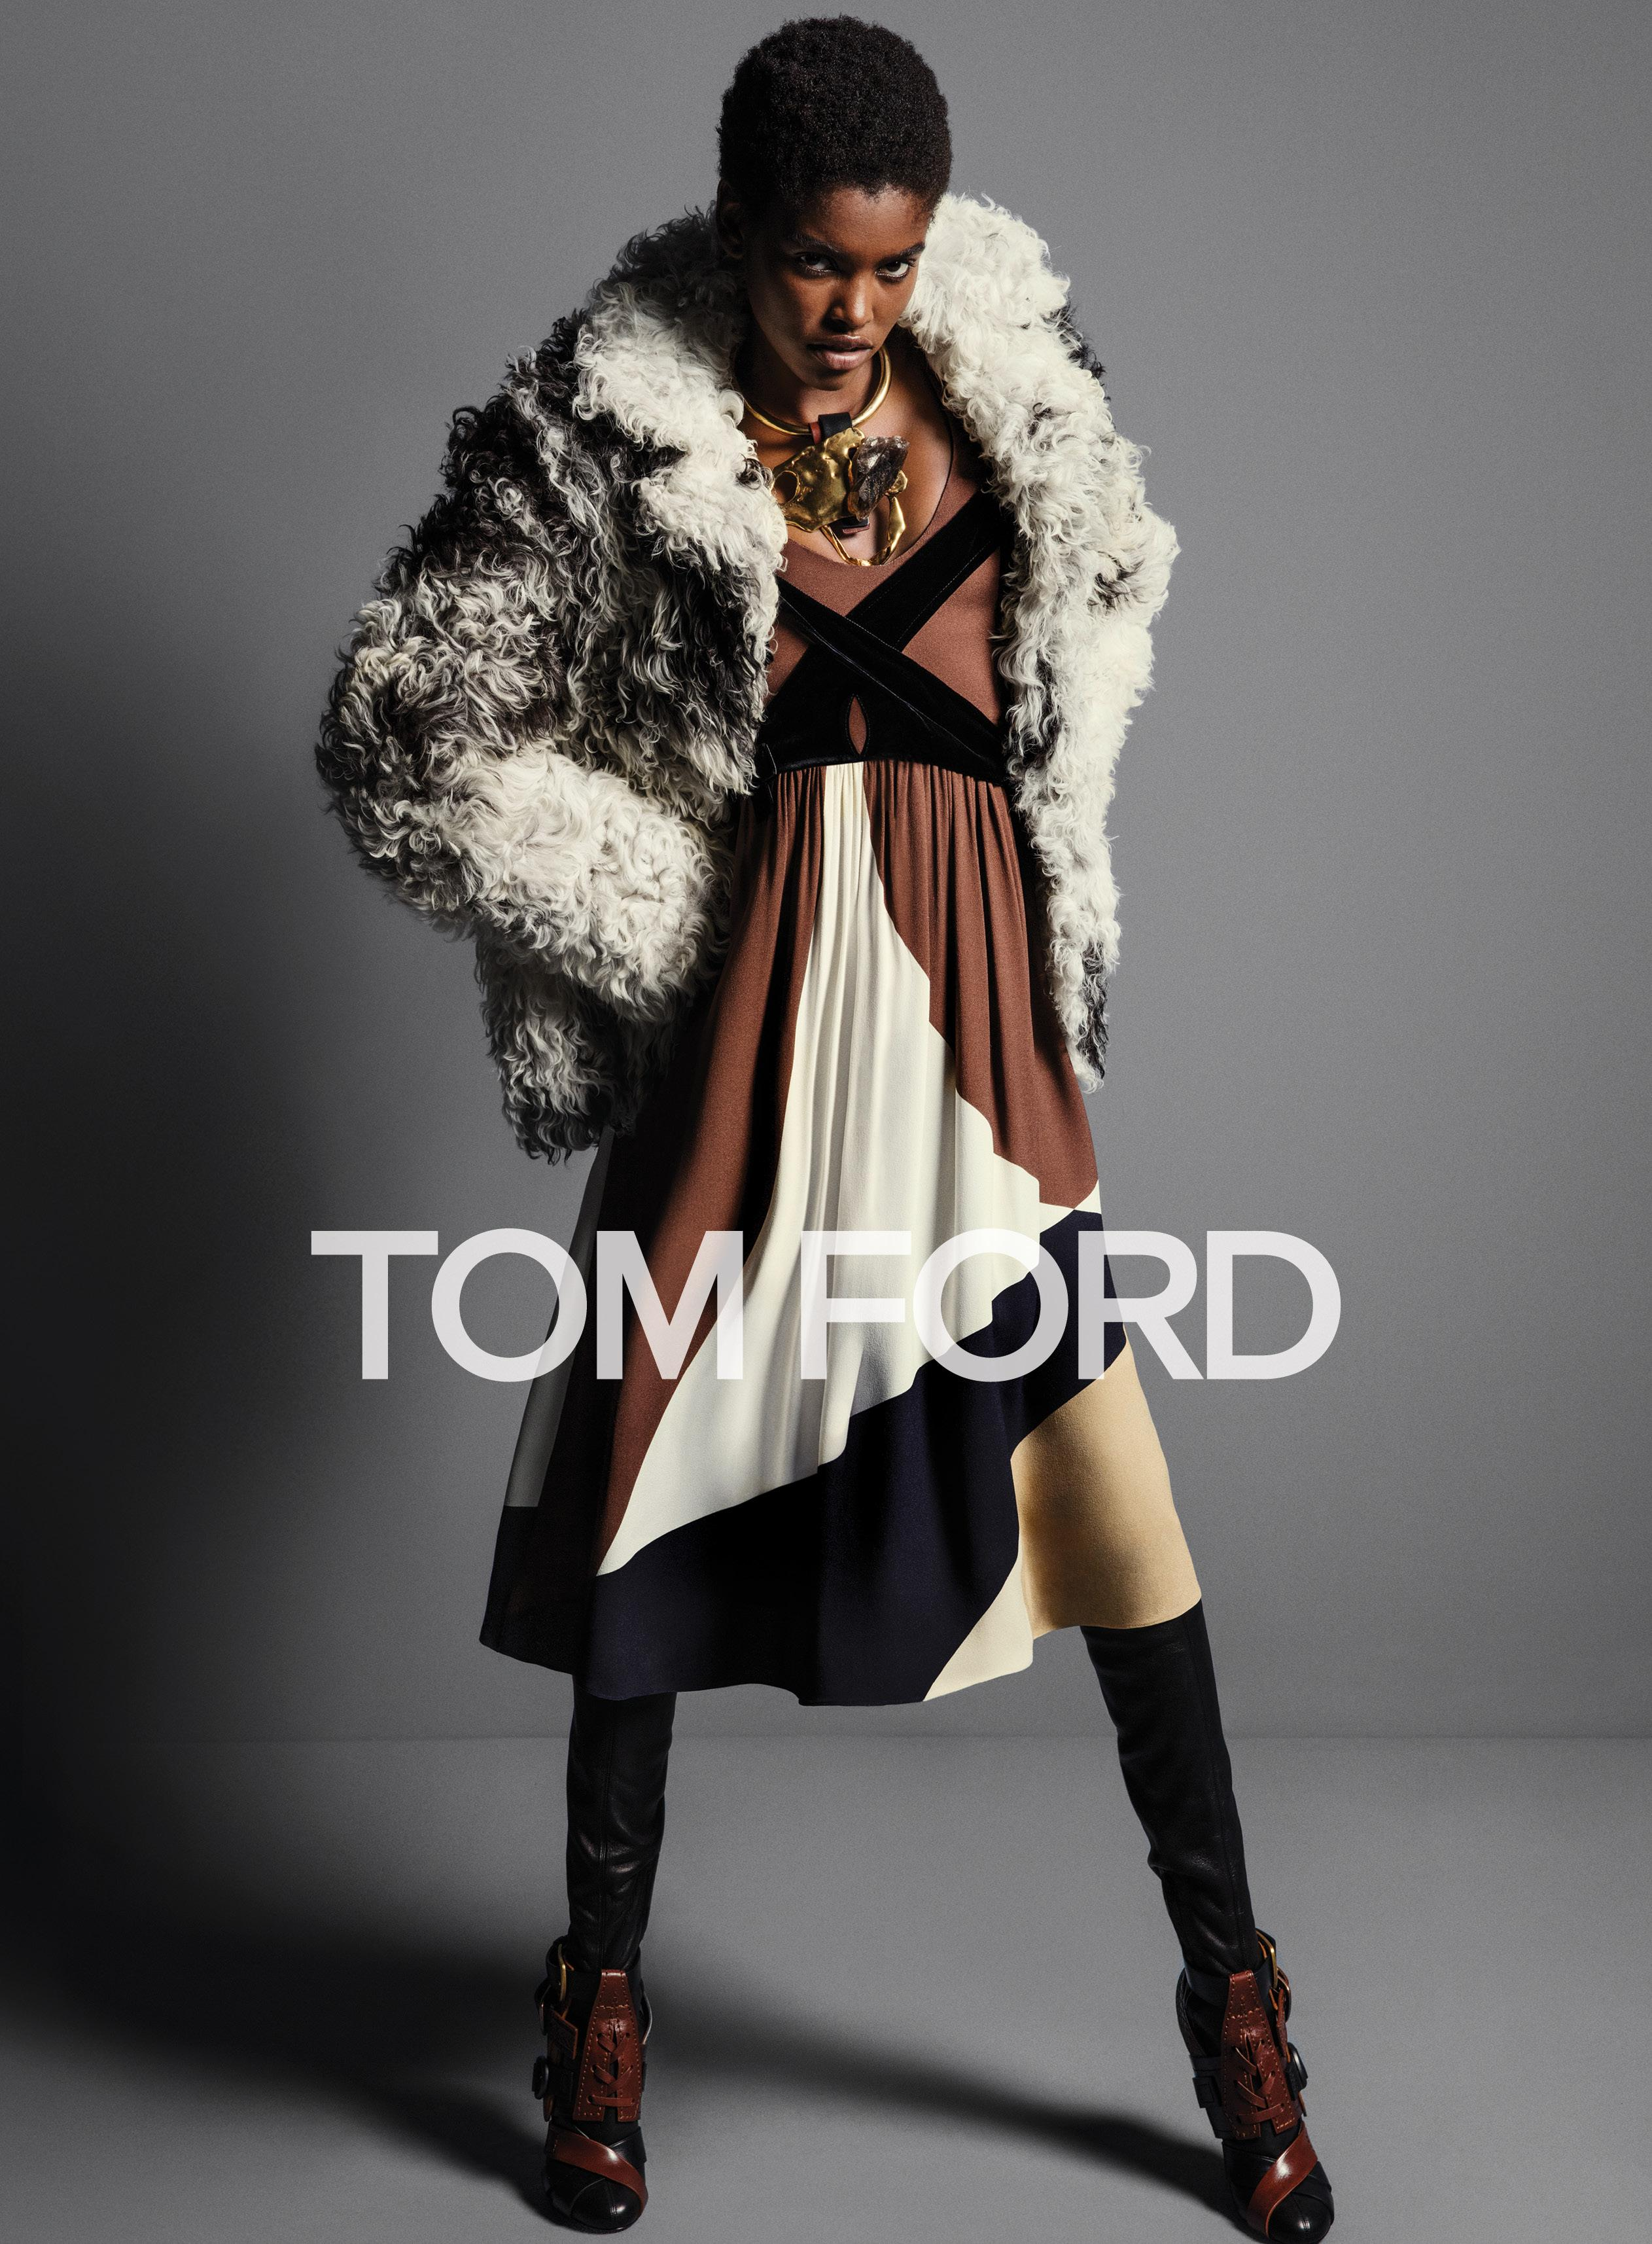 37a32643725 TOM FORD AW16 CAMPAIGN